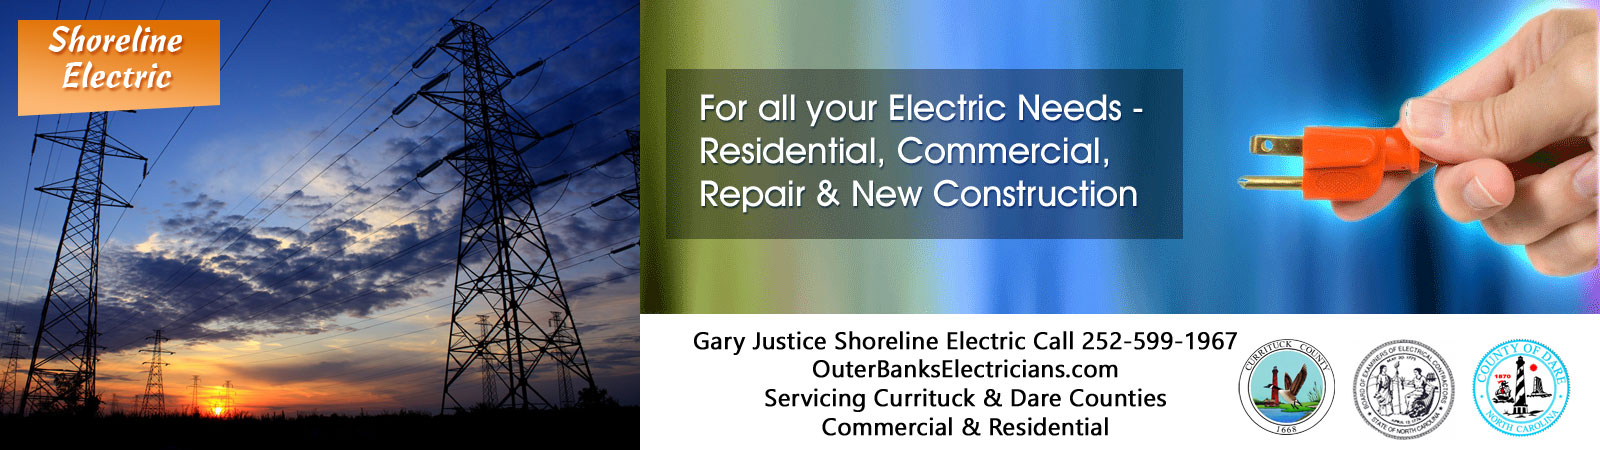 OBX Electrical Contractors